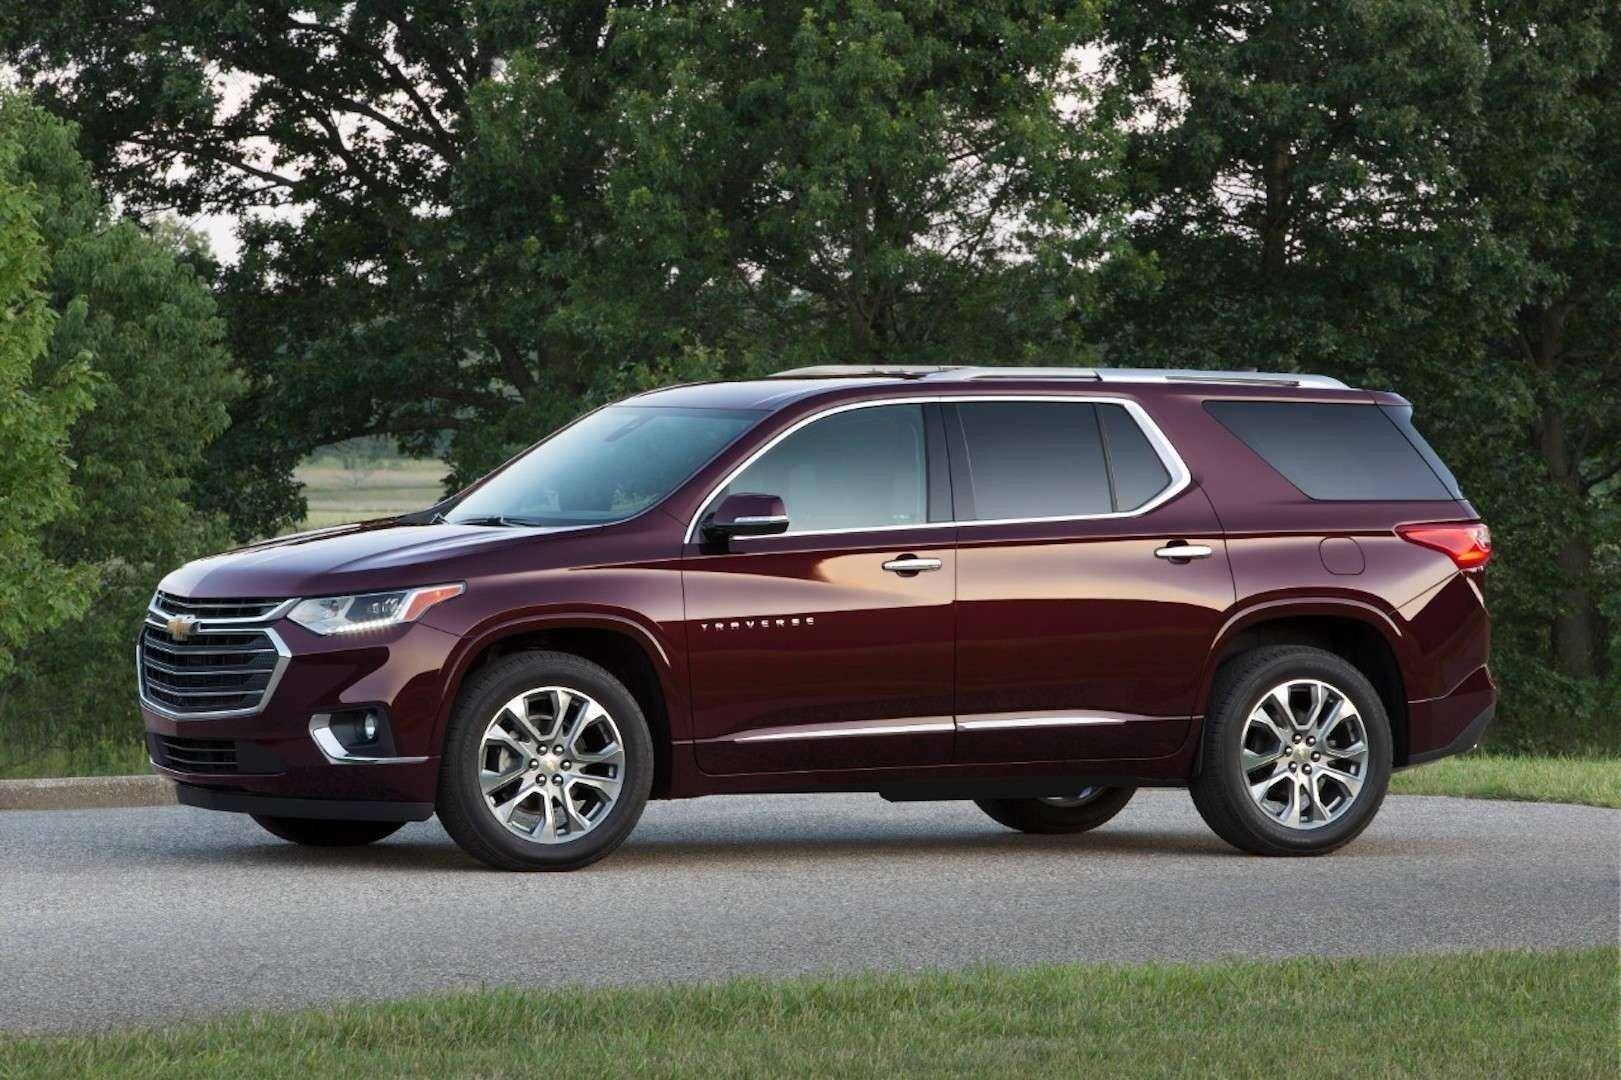 Chevy Traverse Mpg >> 2019 Chevrolet Traverse Mpg Redesign And Price Car 2018